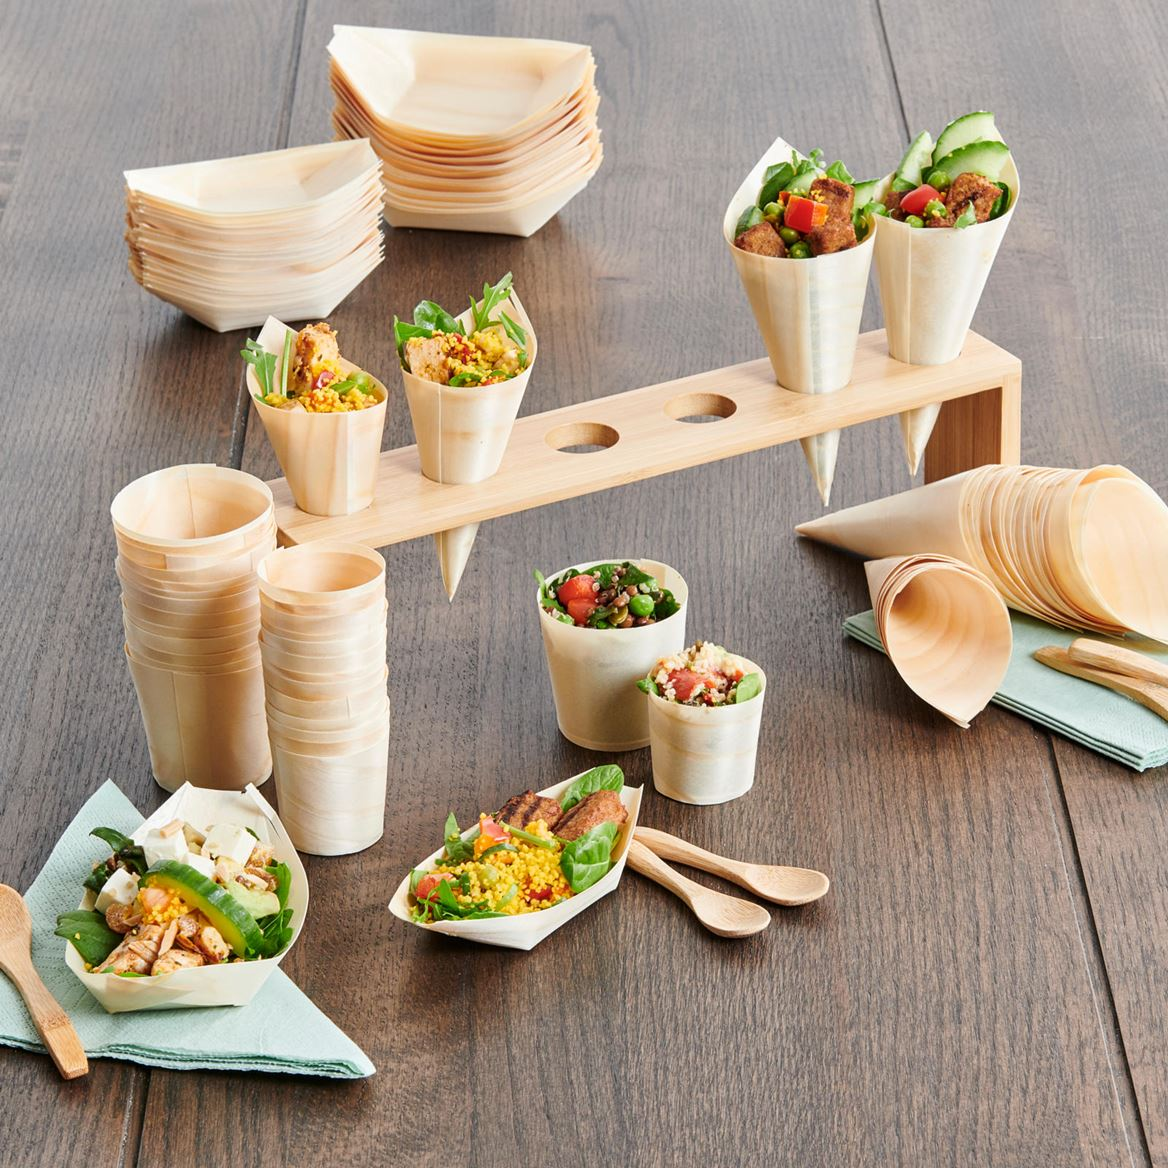 APERO ECO Cornets set de 20 naturel H 12.5 cm_apero-eco-cornets-set-de-20-naturel-h-12-5-cm